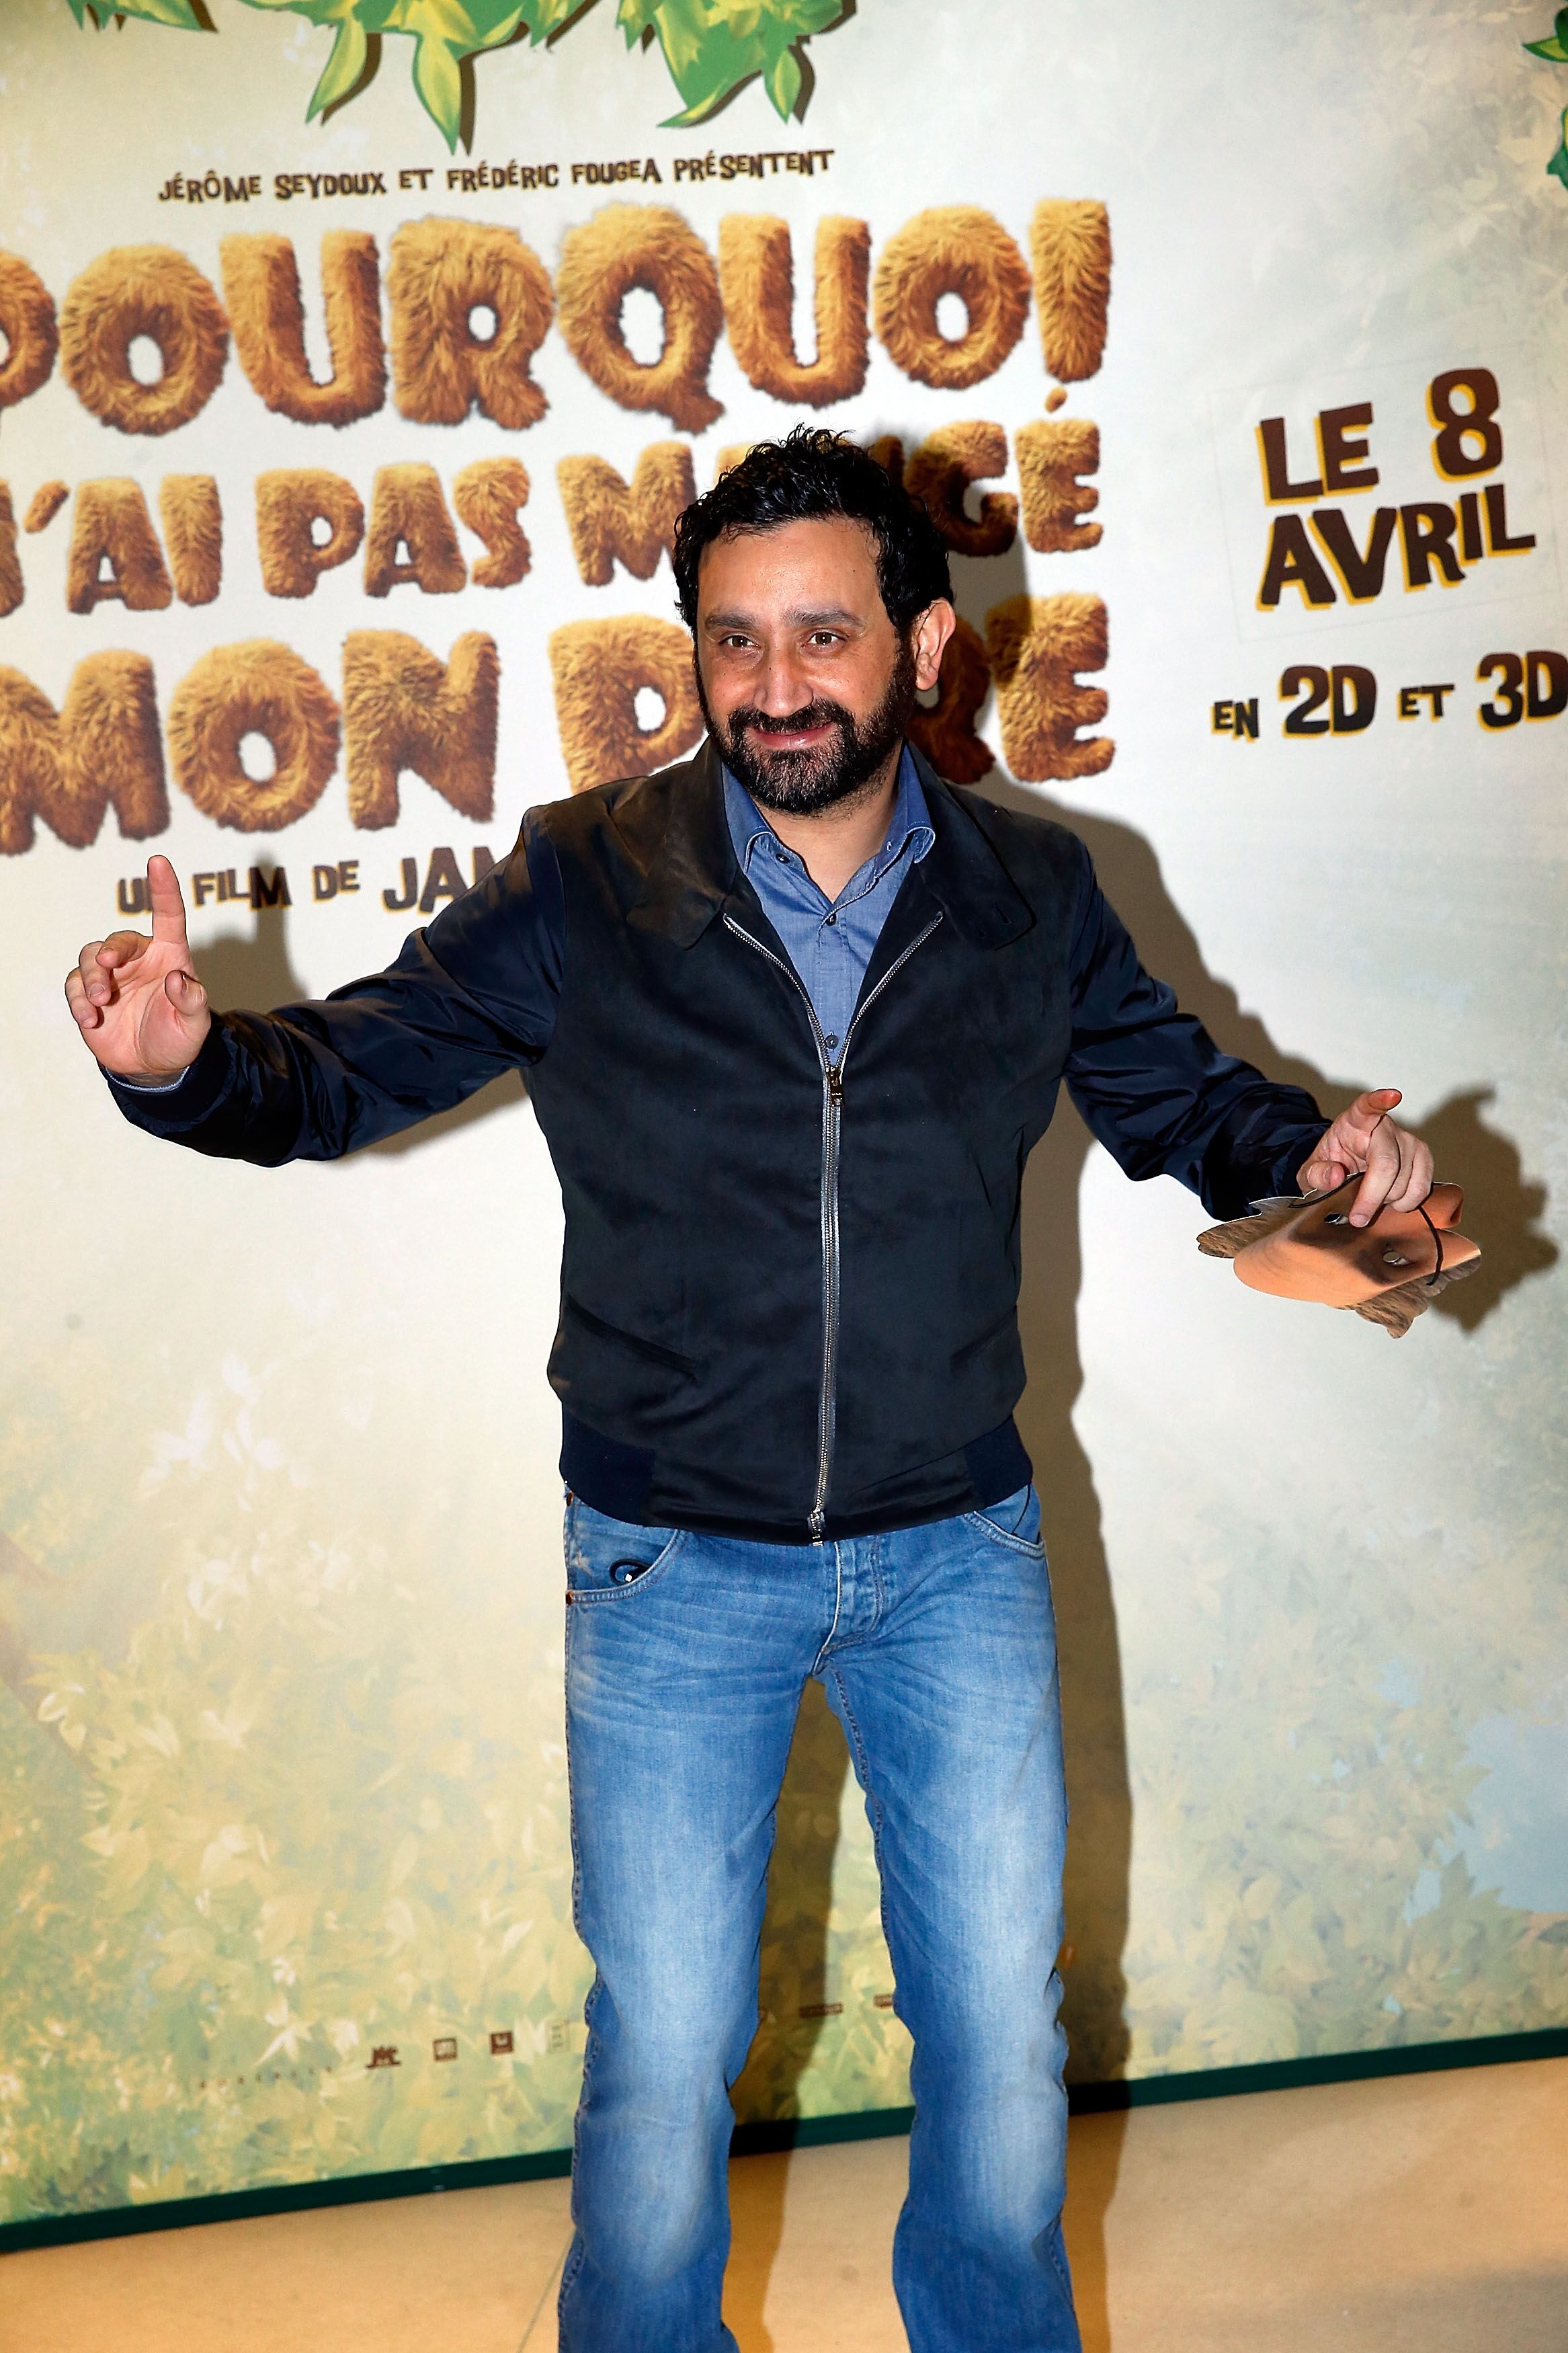 Cyril Hanouna à Pathe Beaugrenelle le 29 mars 2015 à Paris, France. | Photo : Getty Images